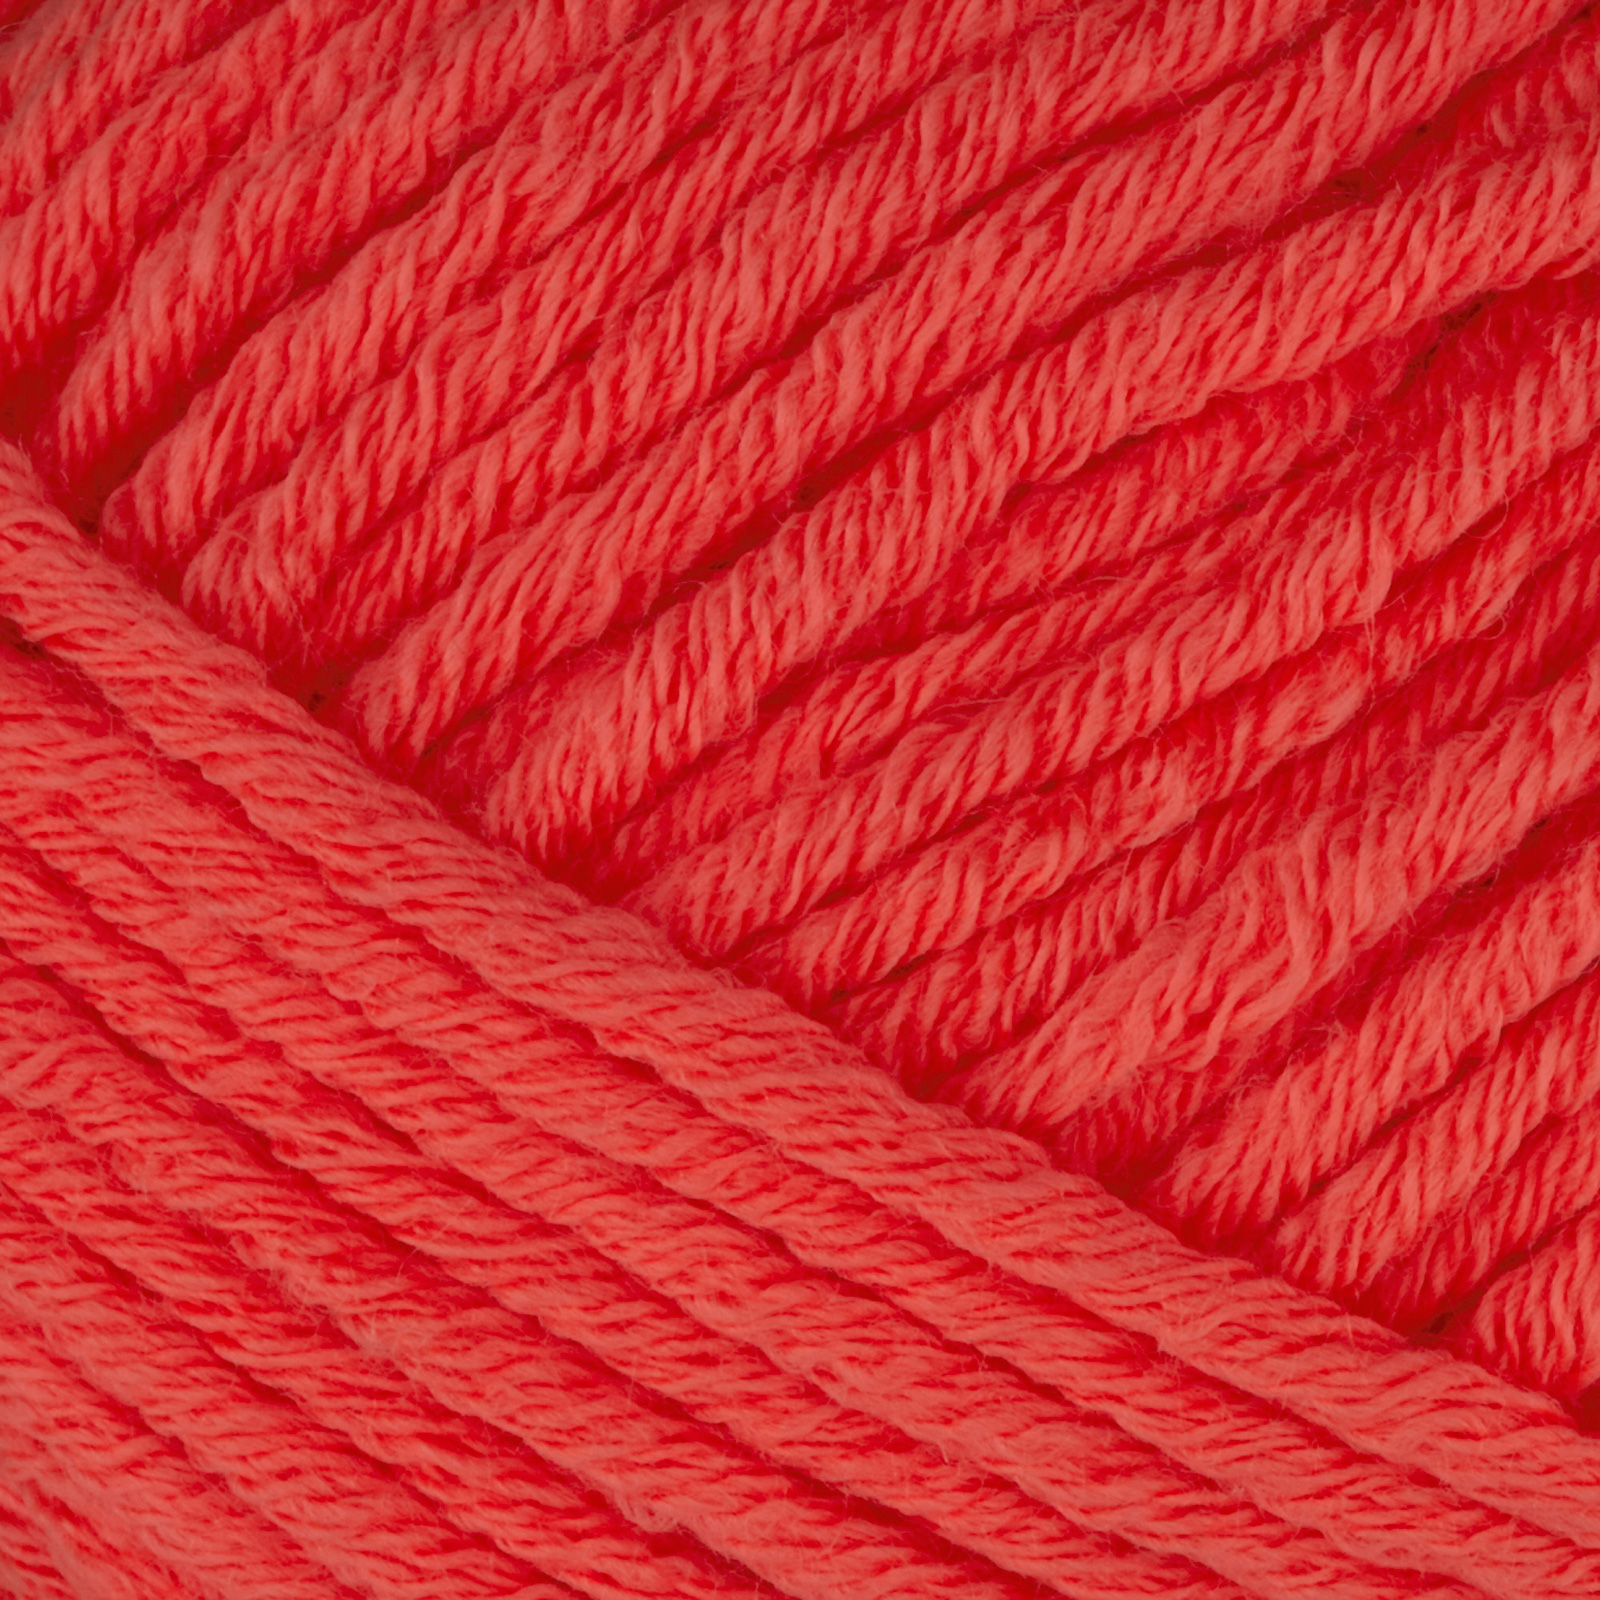 Red Heart Heads Up Yarn 275 Bright Coral by Coats & Clark in USA